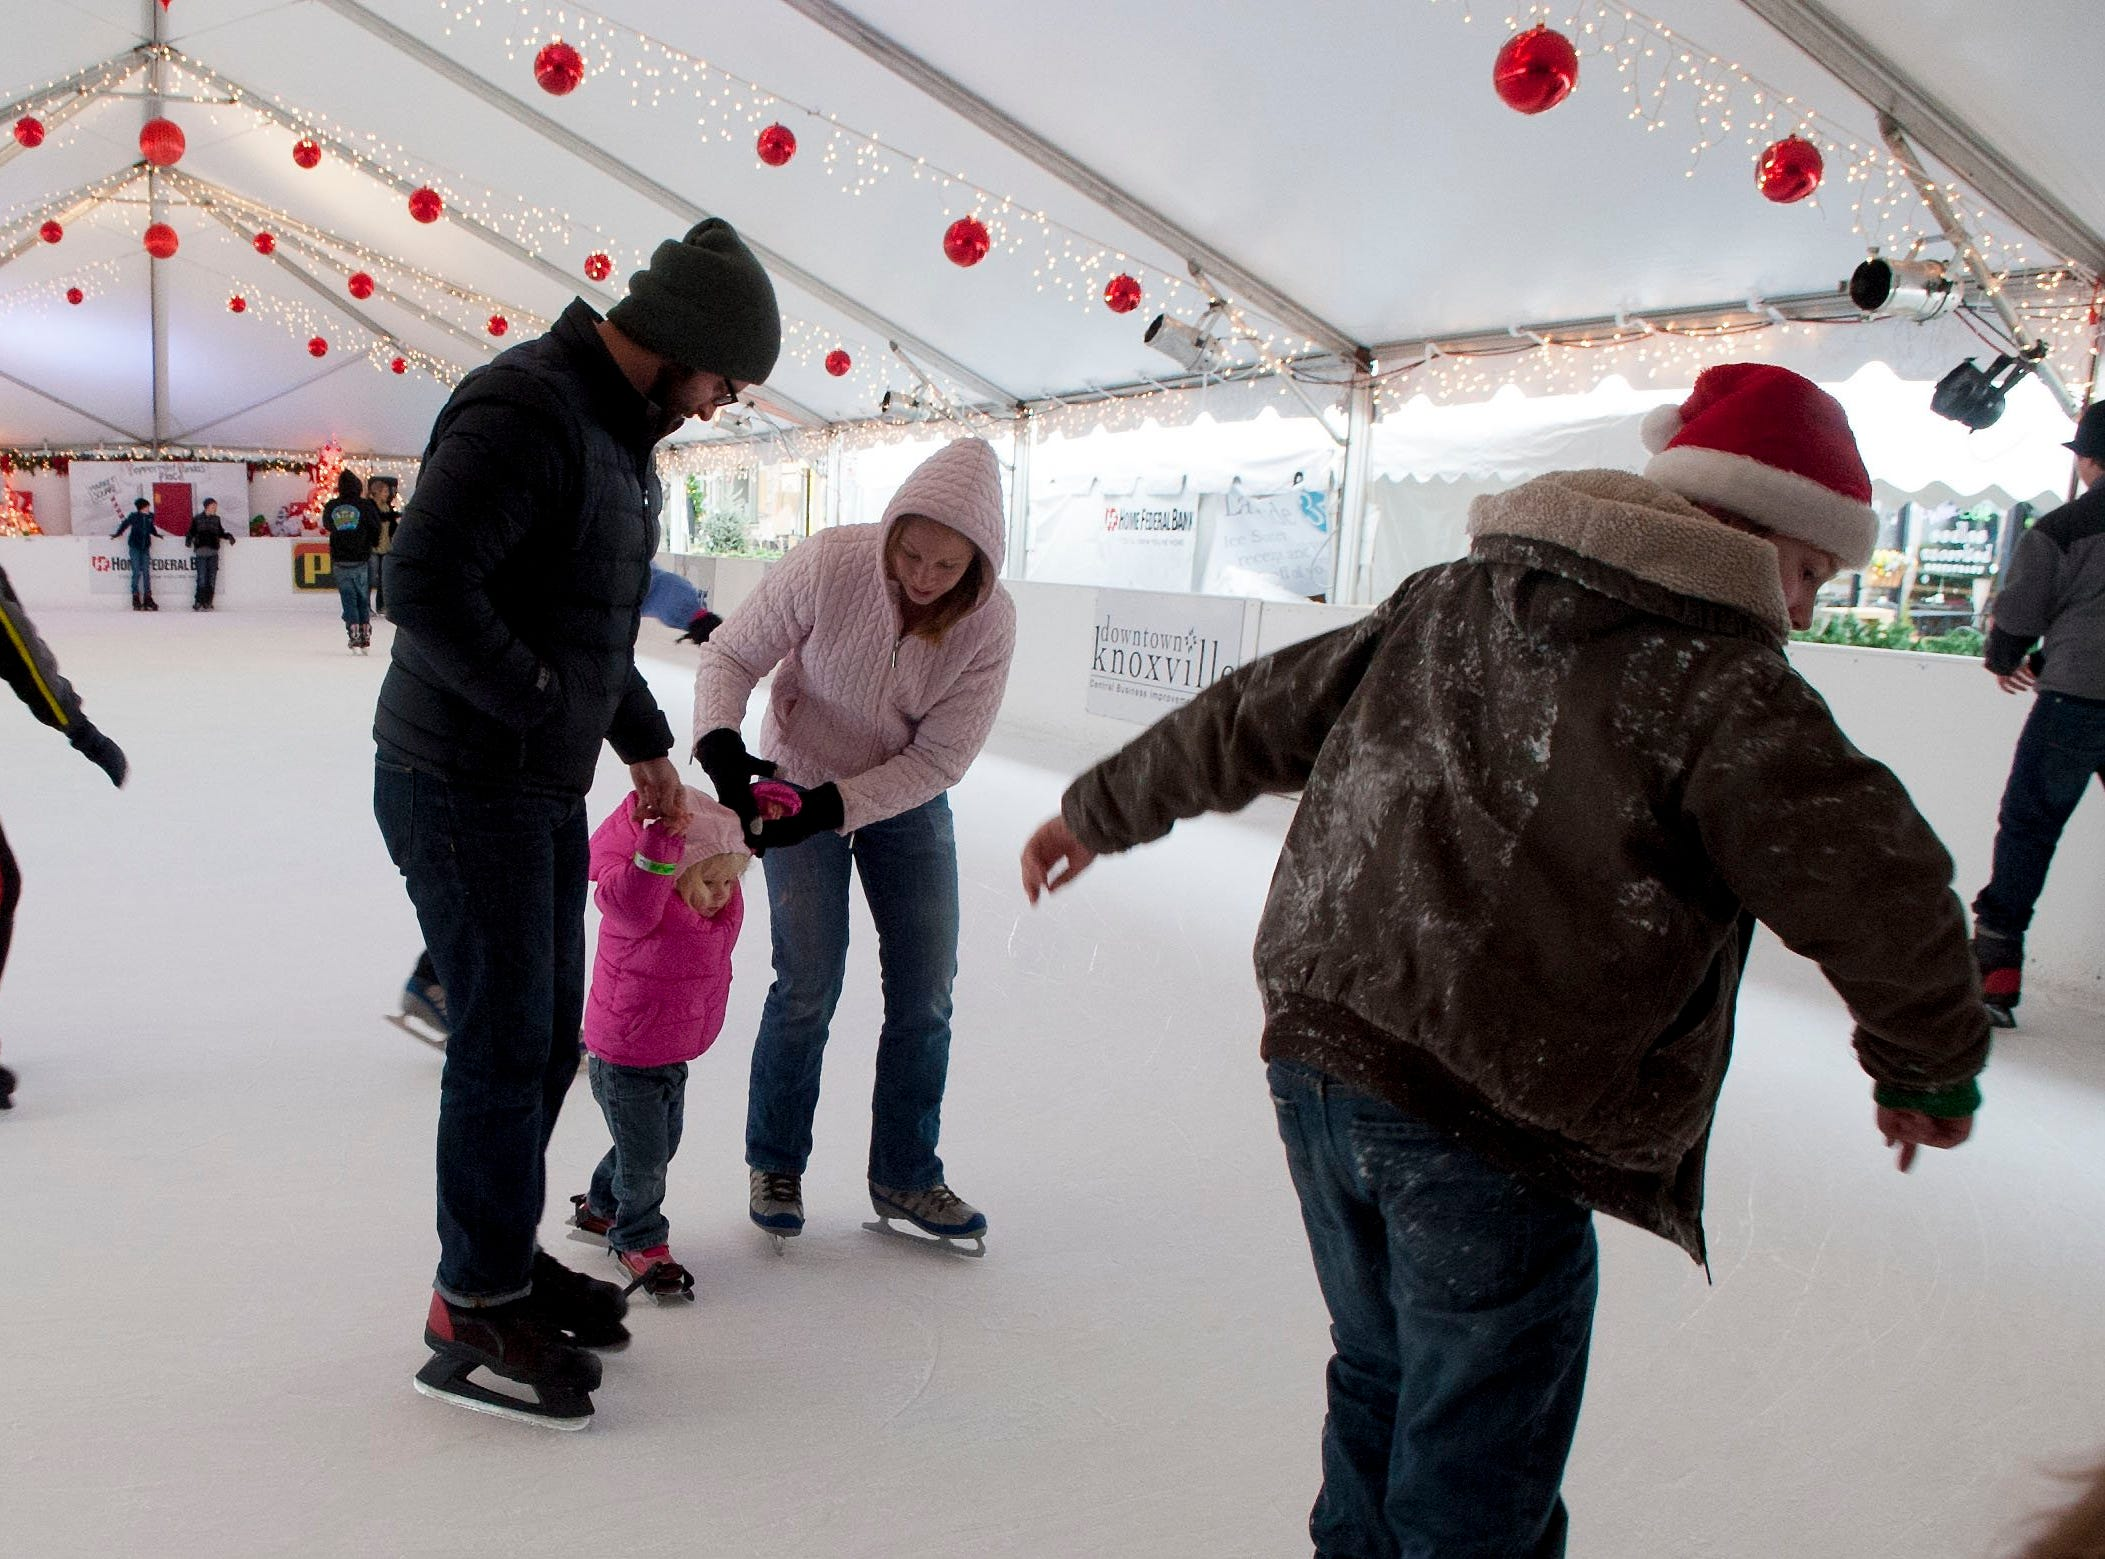 Joseph and Johanna Luncford help their tow year old daughter McKinley Luncford navigate the ice at the  outdoor ice skating rink on Market Square in downtown Knoxville Tuesday December 24, 2013.